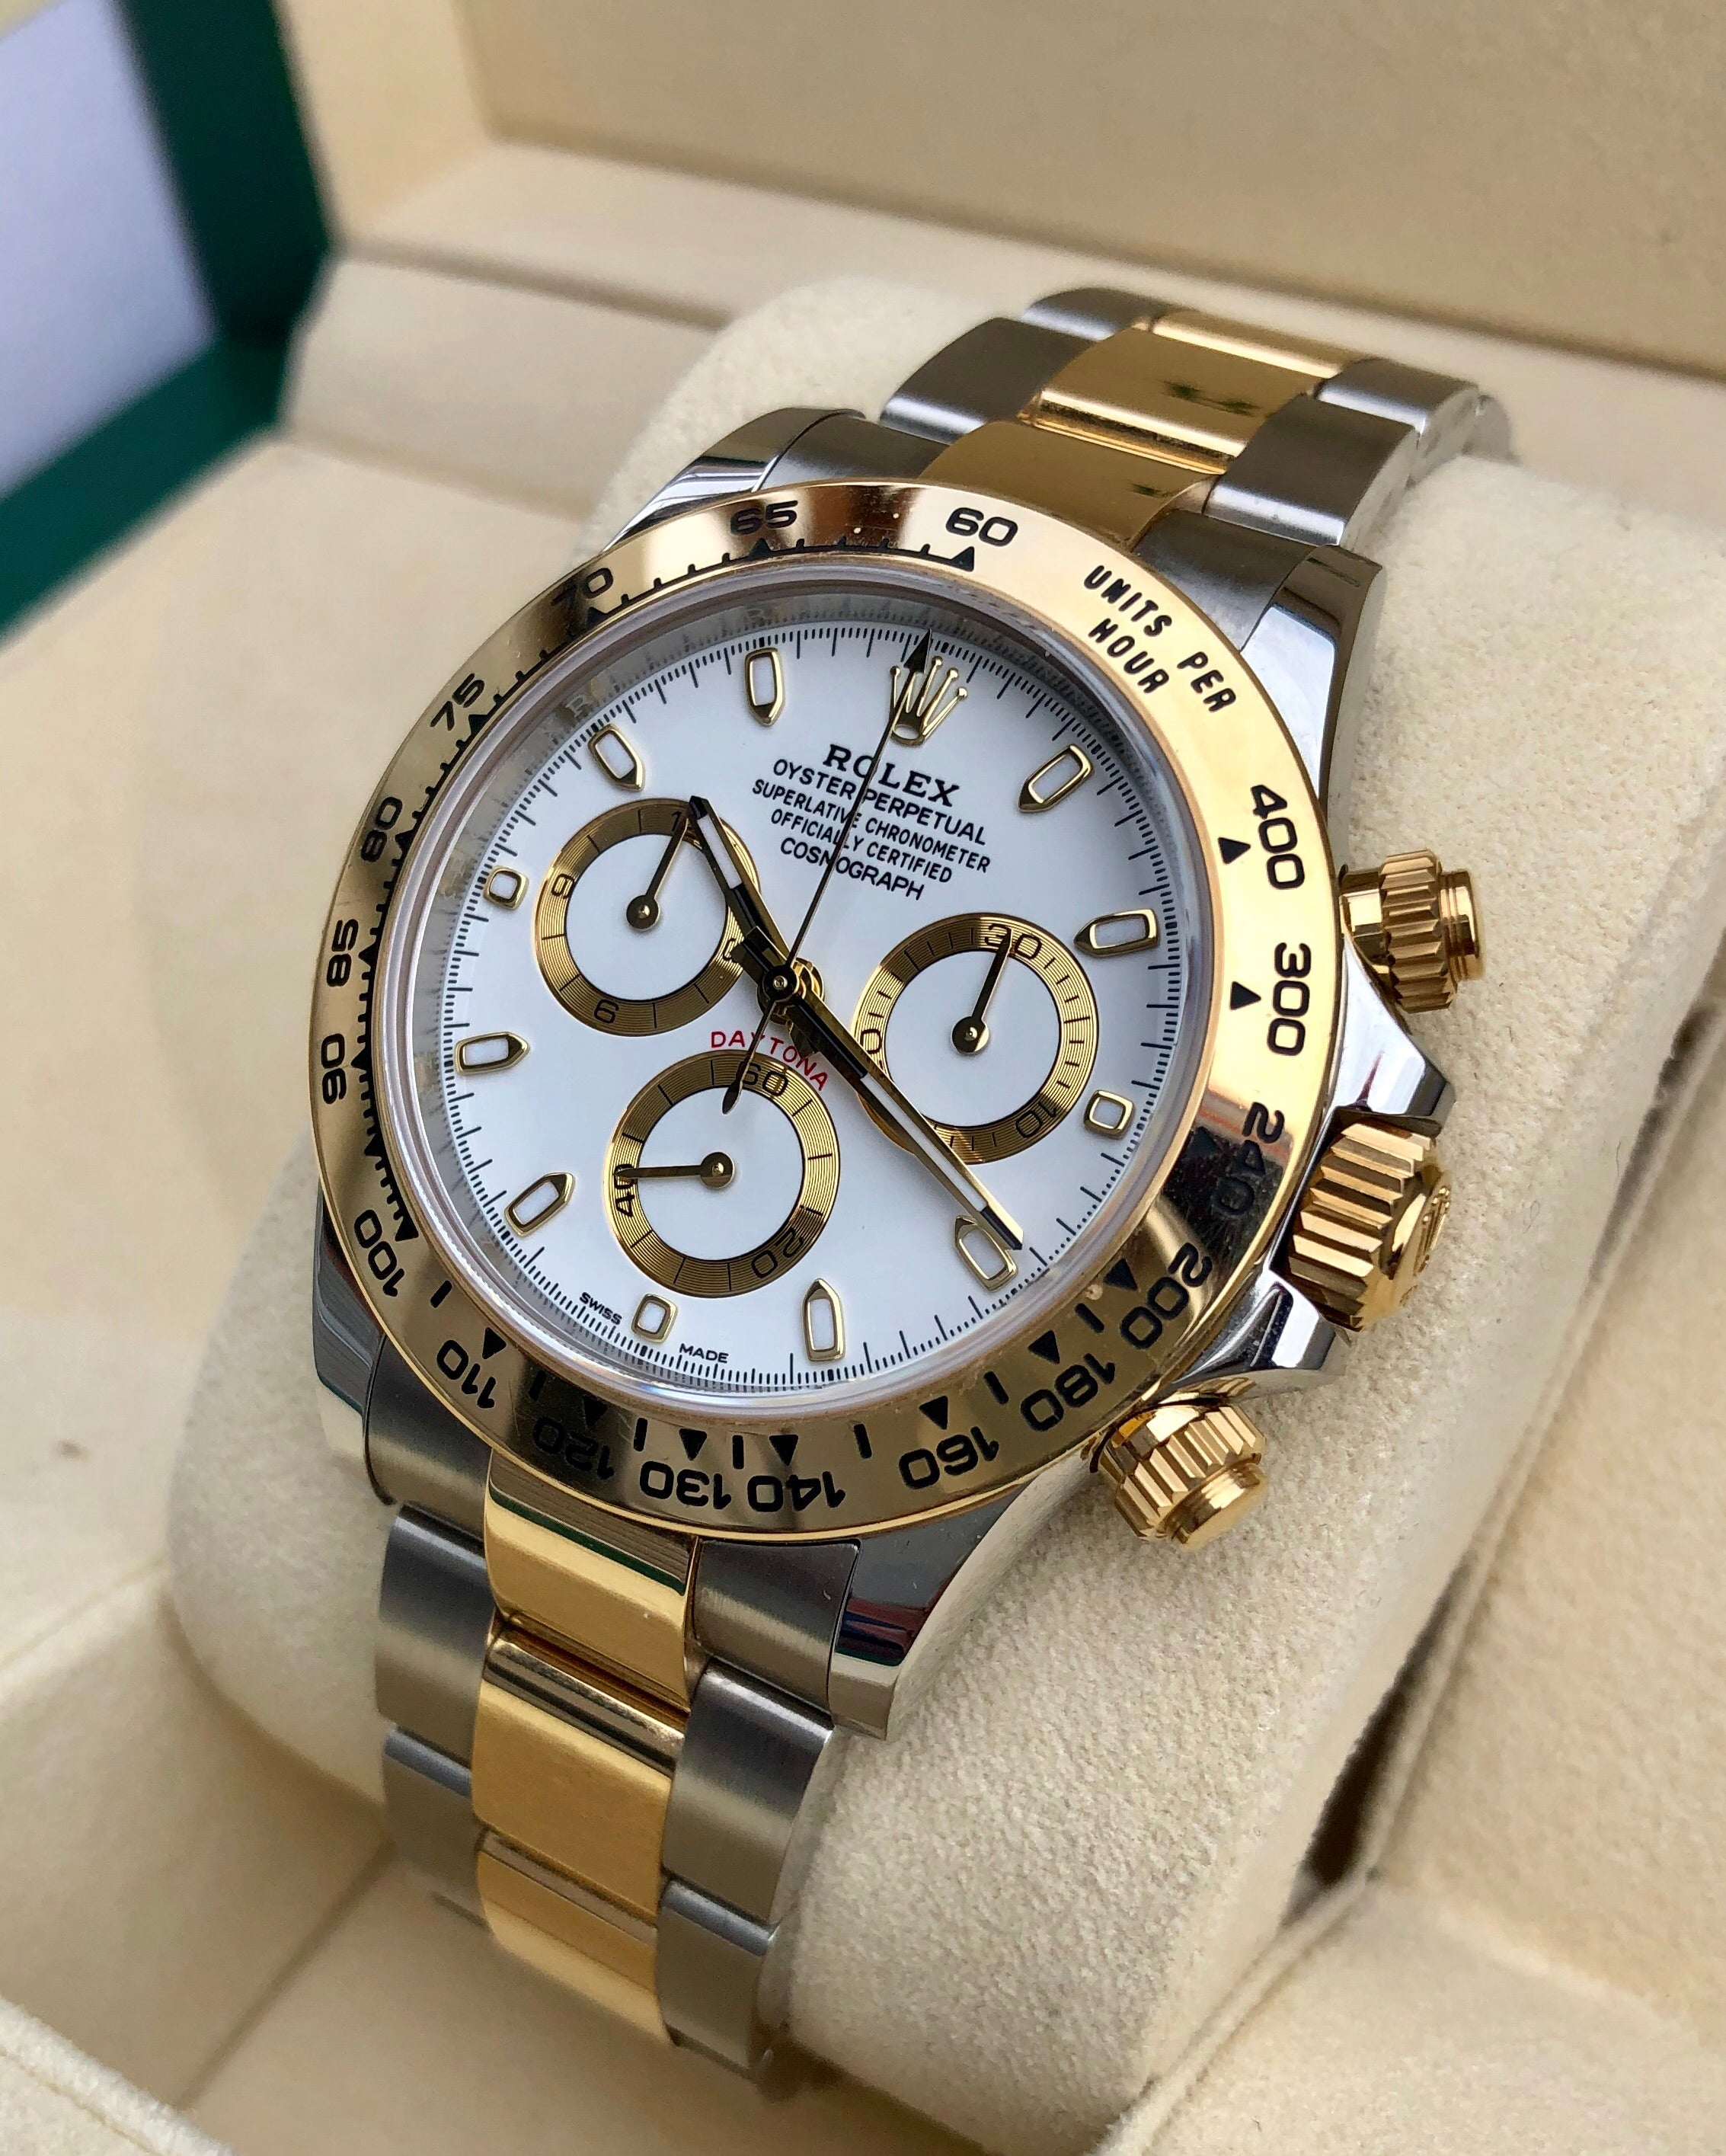 3a1f1a5f389 Rolex Daytona Cosmograph 116503 Two-Tone Gold Steel - Knight Watch ...